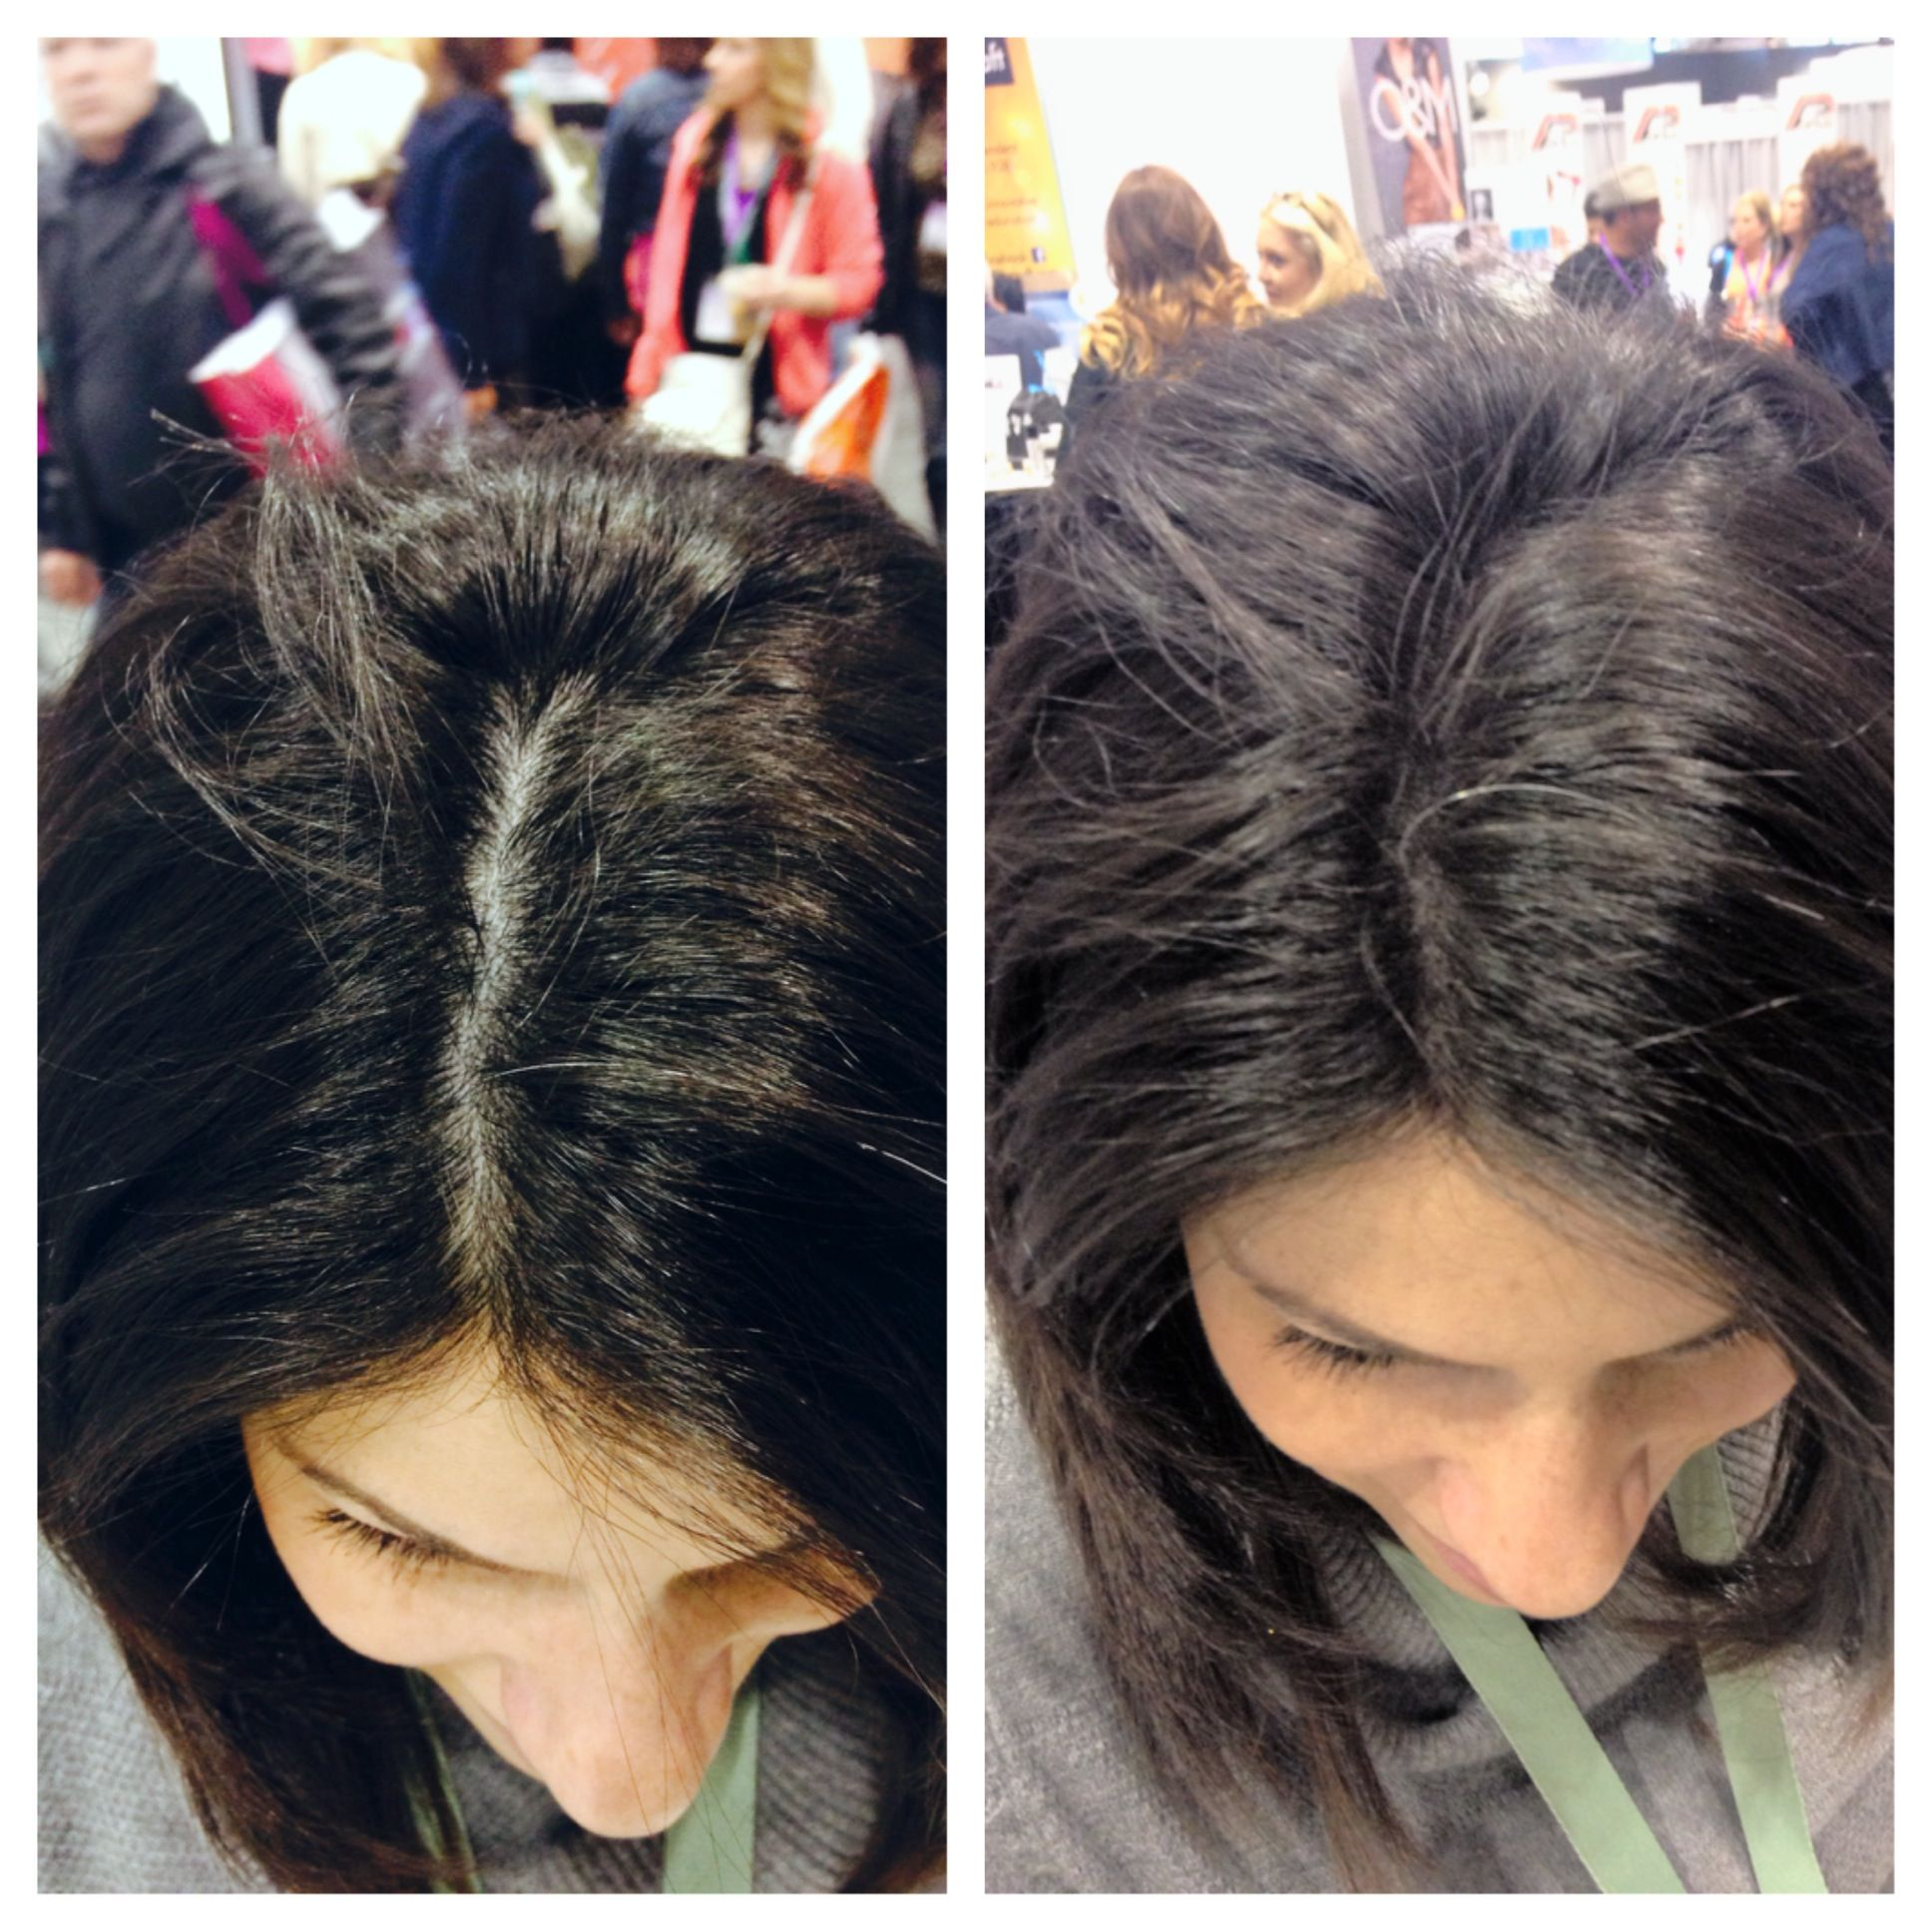 beforeandafter photos picstitch nofilter Viviscal